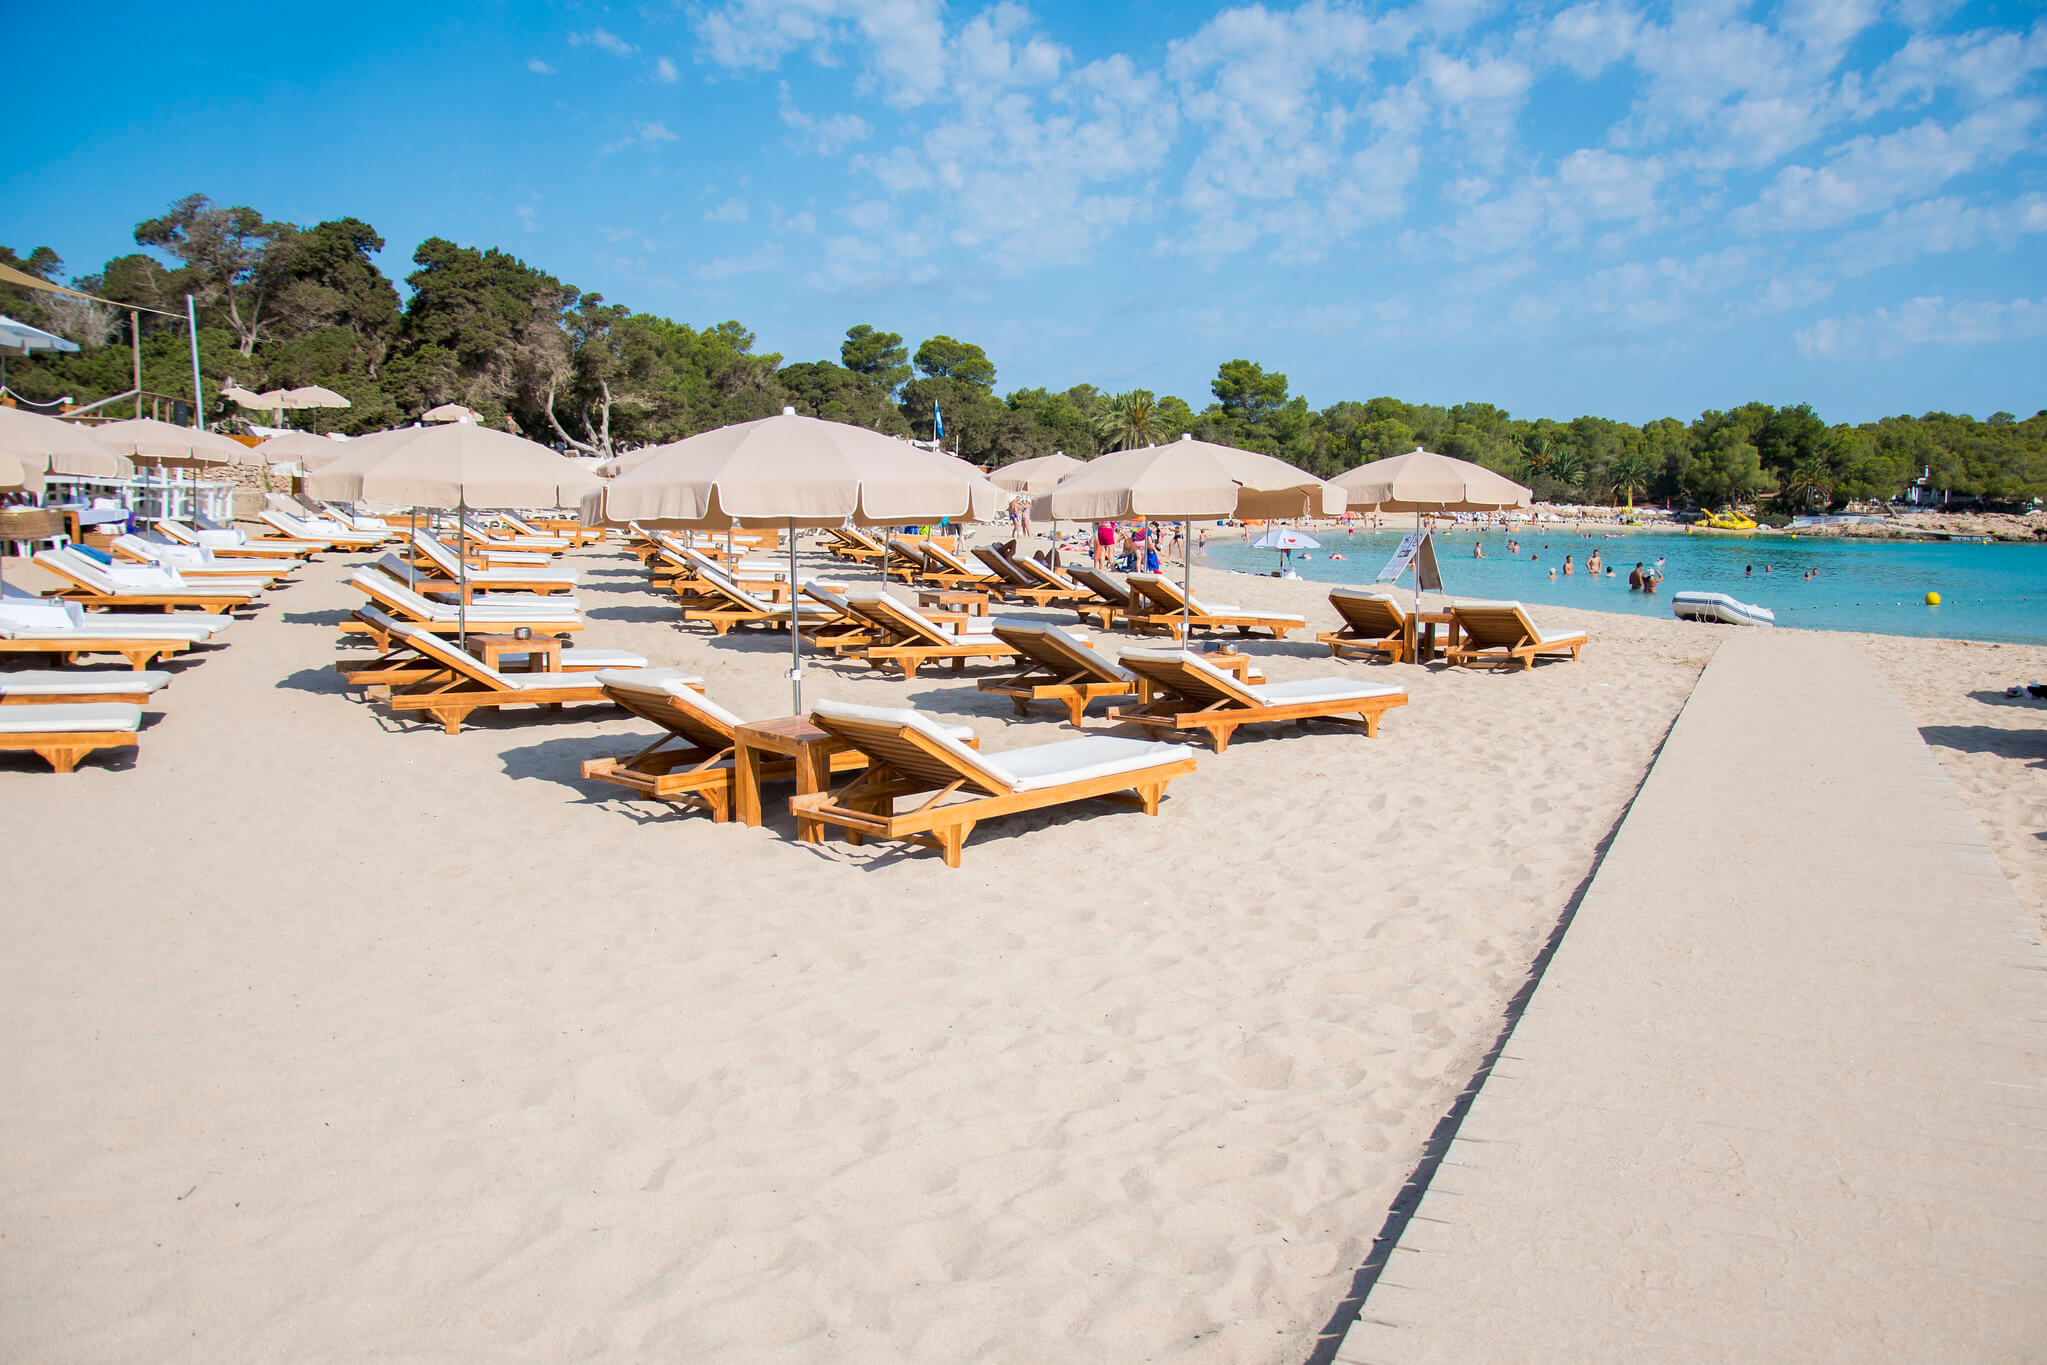 https://www.white-ibiza.com/wp-content/uploads/2020/03/ibiza-beaches-cala-bassa-05.jpg